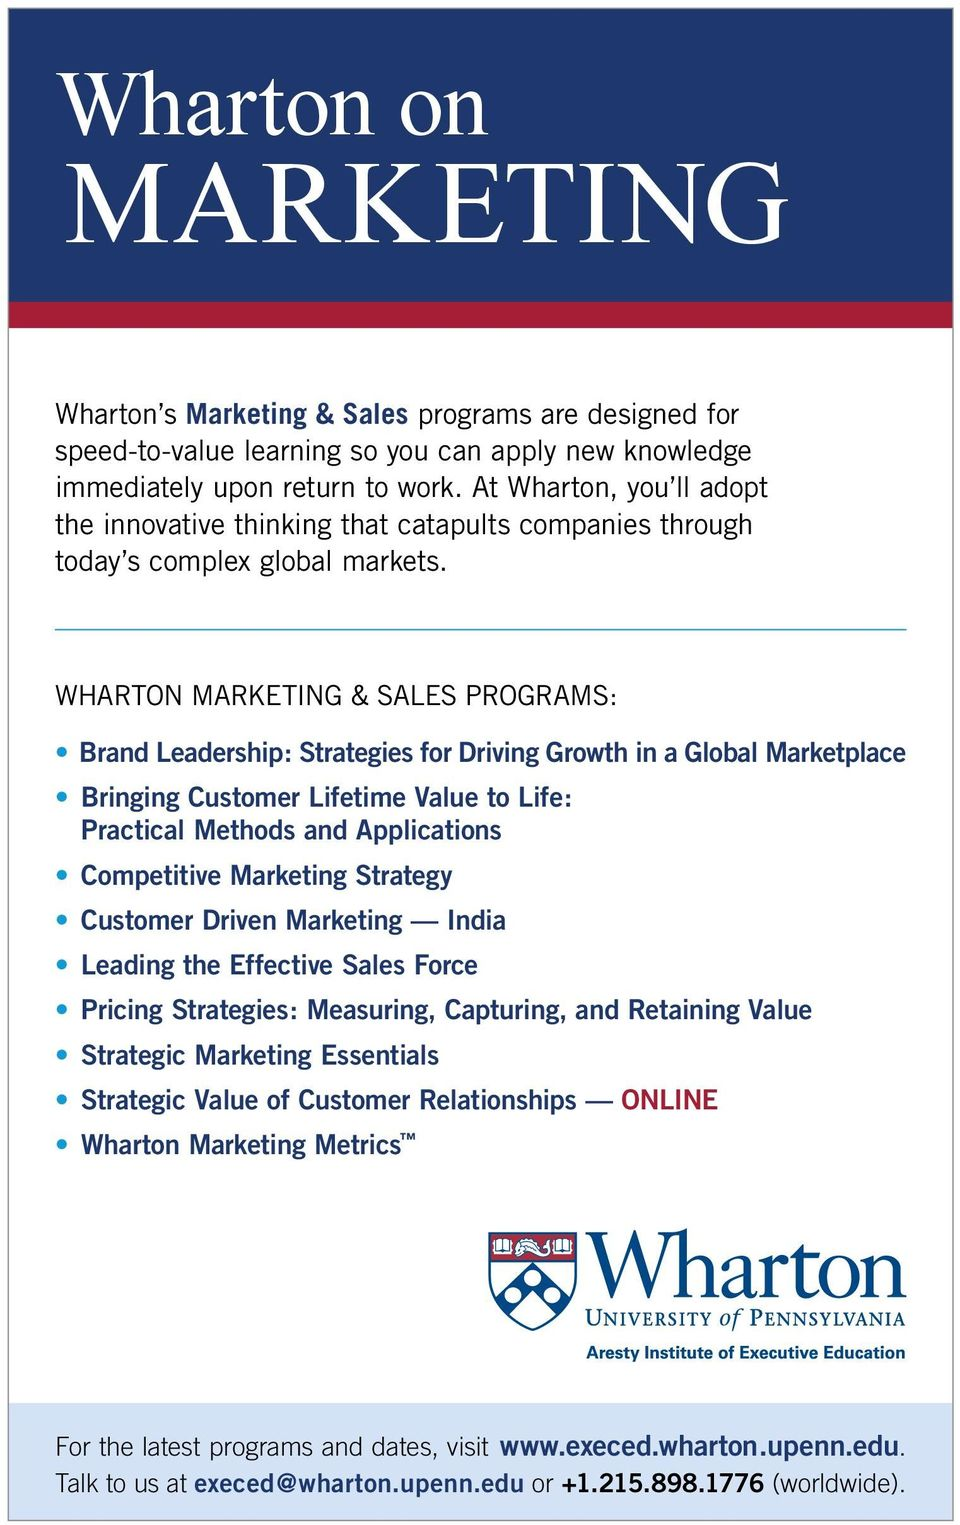 WHARTON MARKETING & SALES PROGRAMS: Brand Leadership: Strategies for Driving Growth in a Global Marketplace Bringing Customer Lifetime Value to Life: Practical Methods and Applications Competitive